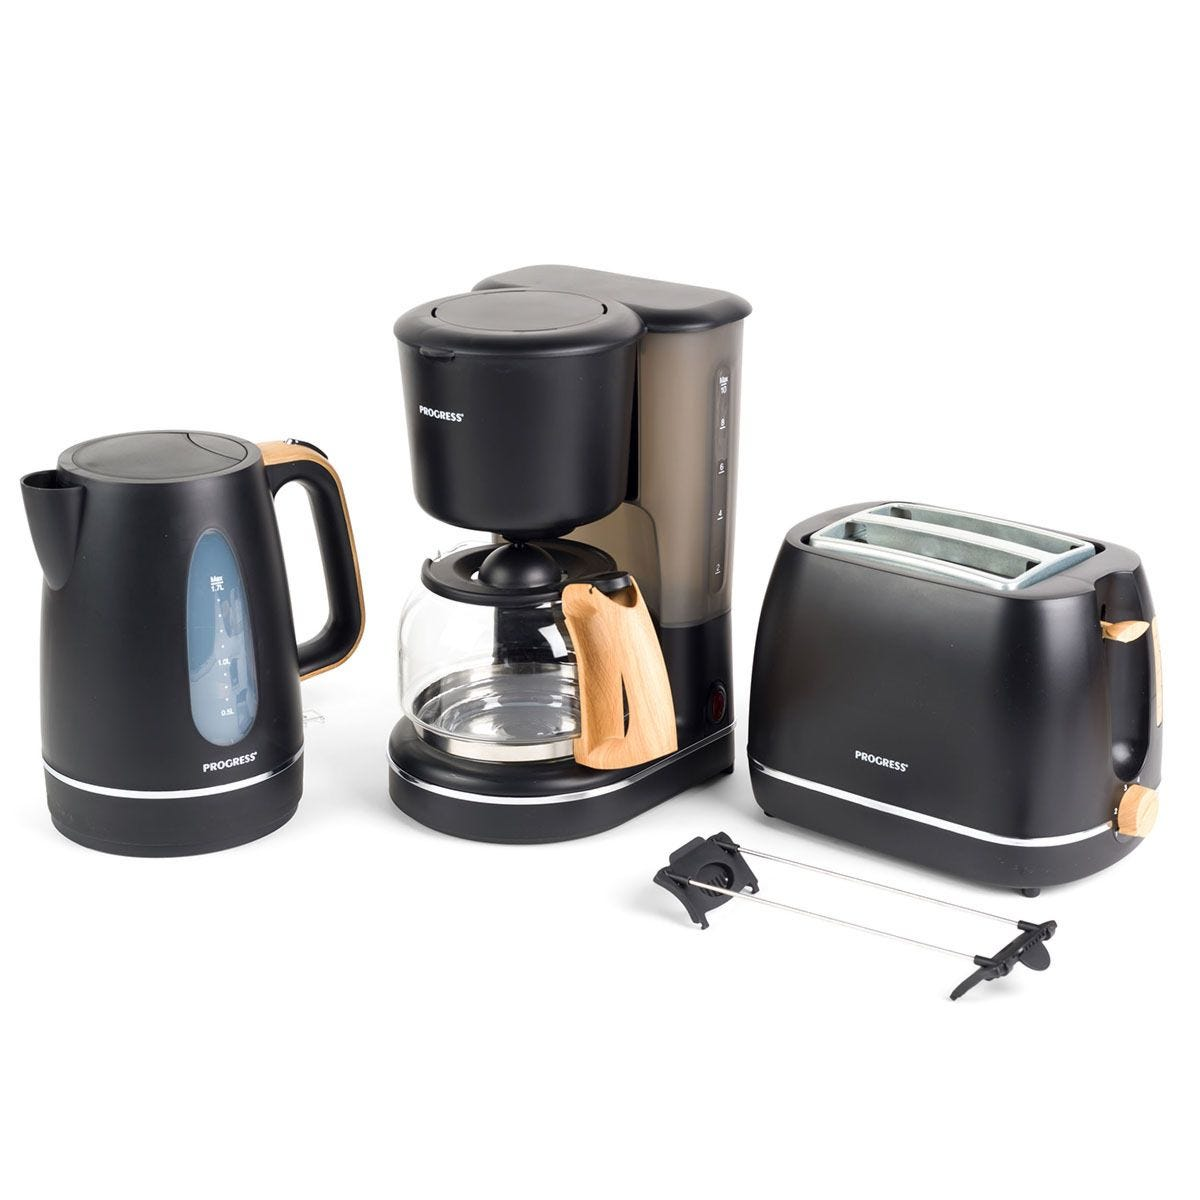 Progress® COMBO–5150 Scandi 2–Slice Toaster, 1.25L Coffee Maker, and 1.7L Jug Kettle – Black with Wood Effect Finish